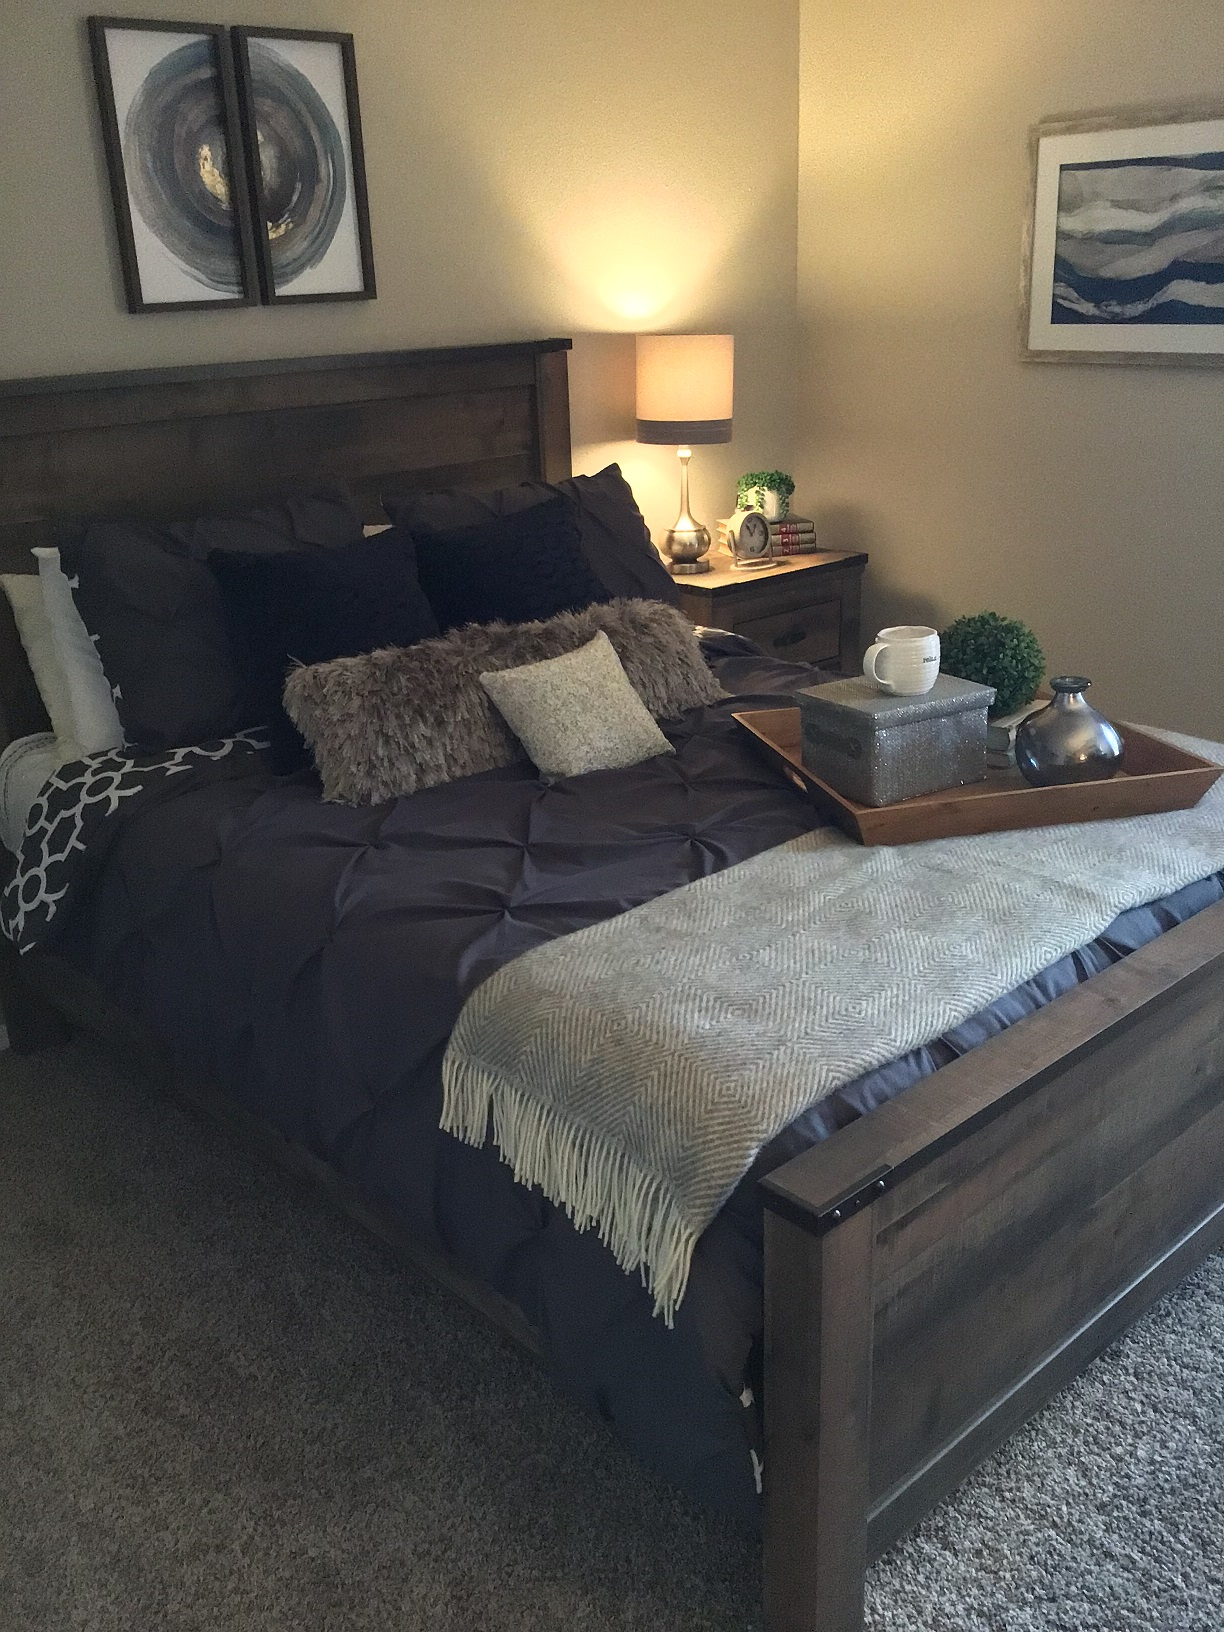 Bedroom at Rustic Woods Apartments in Tulsa, Oklahoma